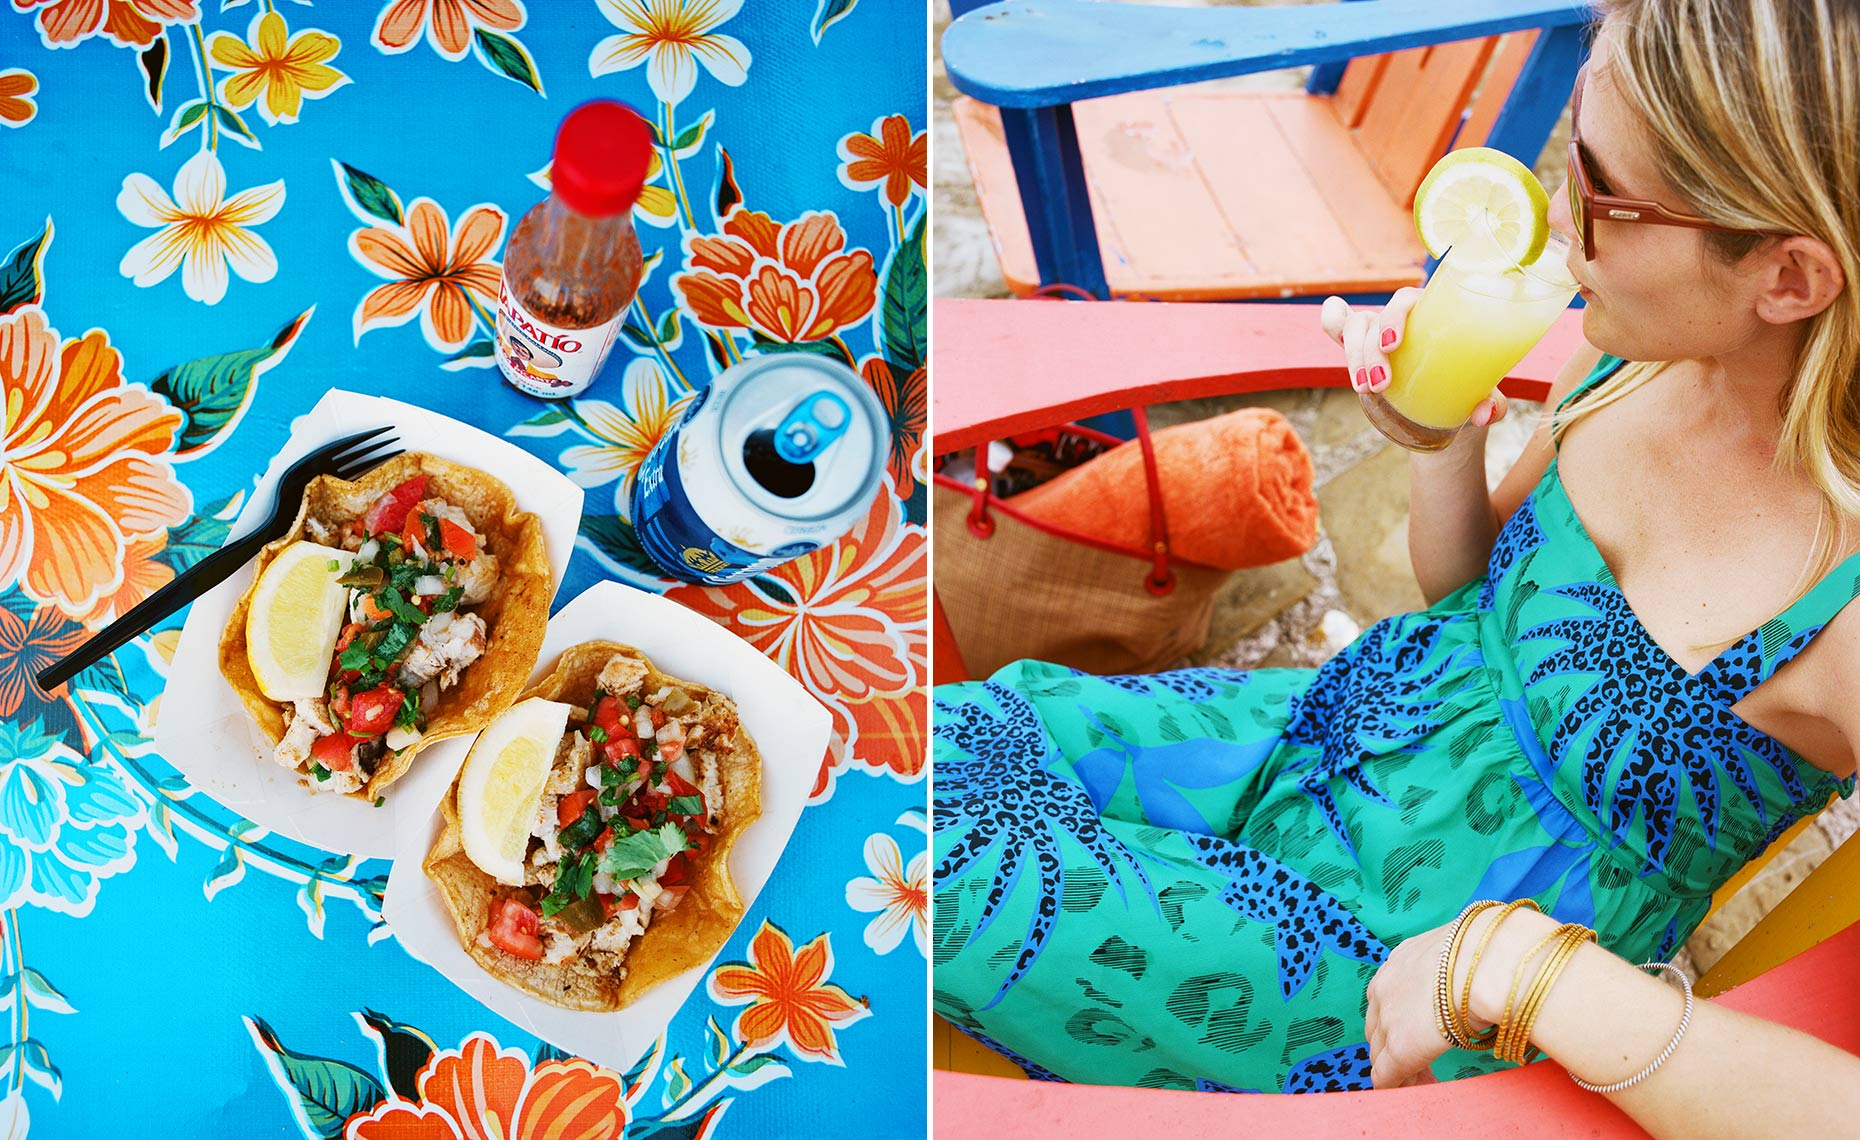 tacos tropical mexican mexico food drink summer dress girl